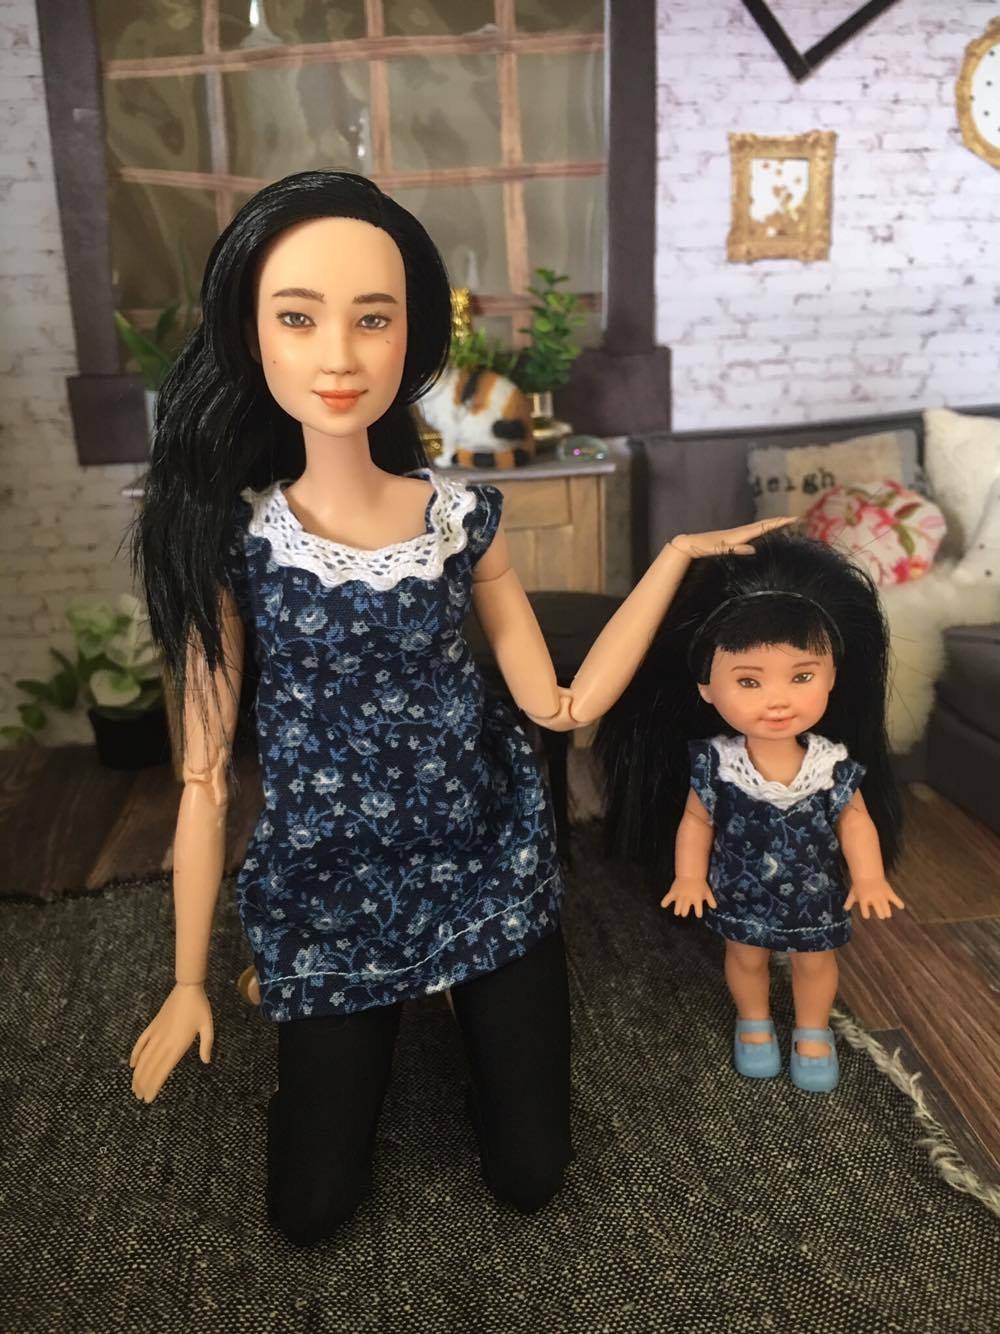 All the Little Dolls